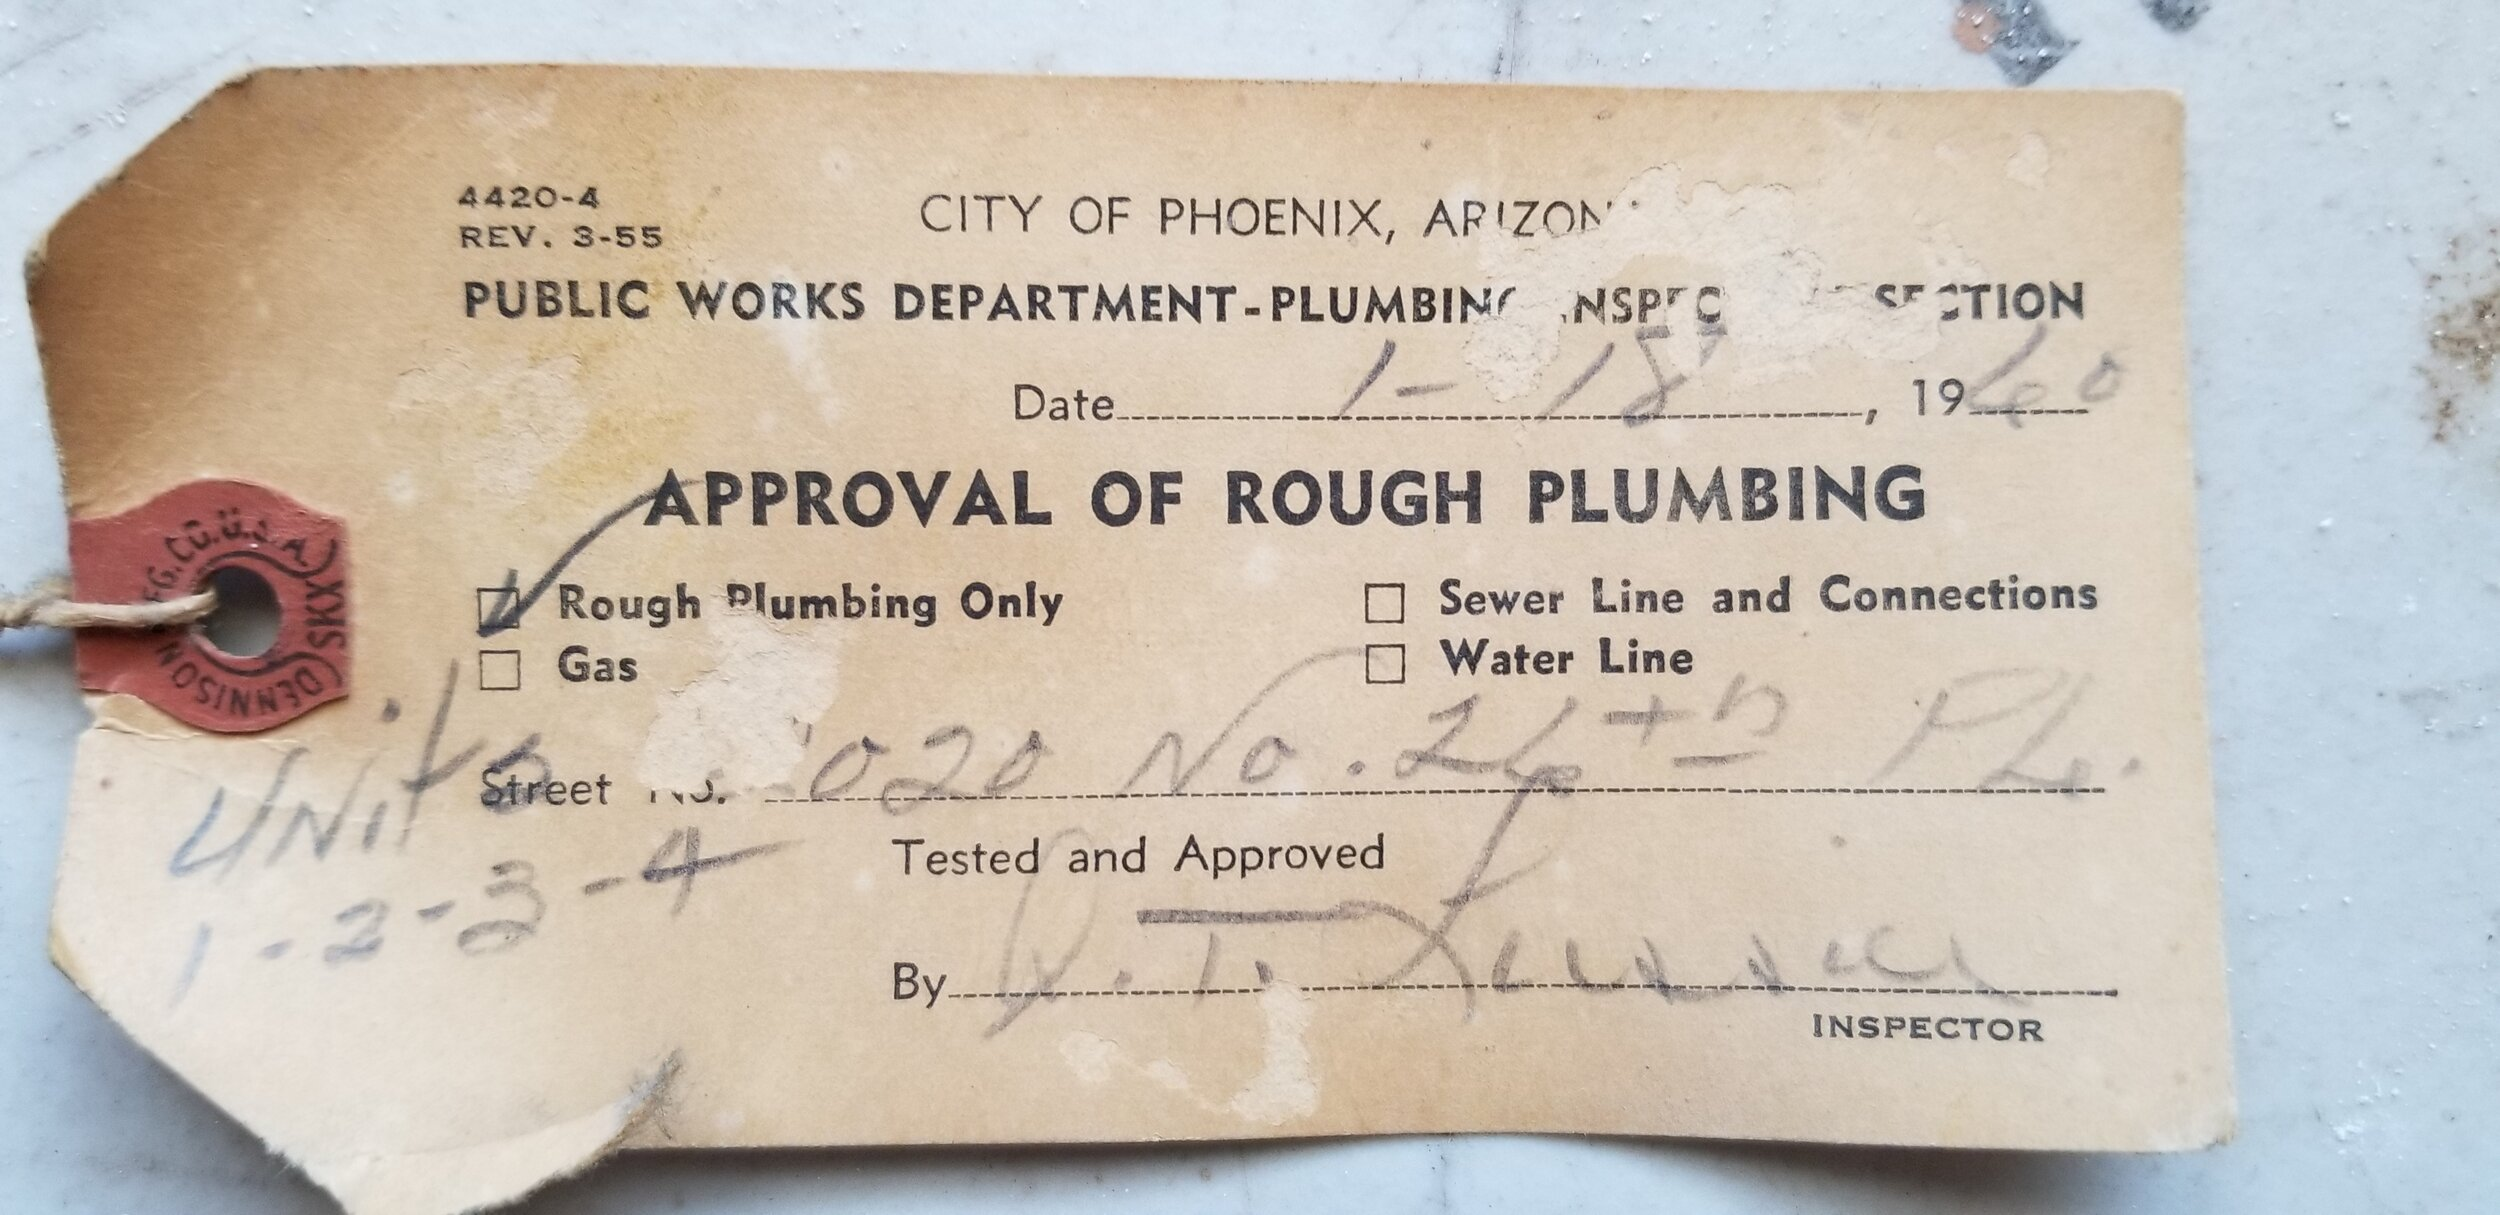 Original inspection tag found in the wall